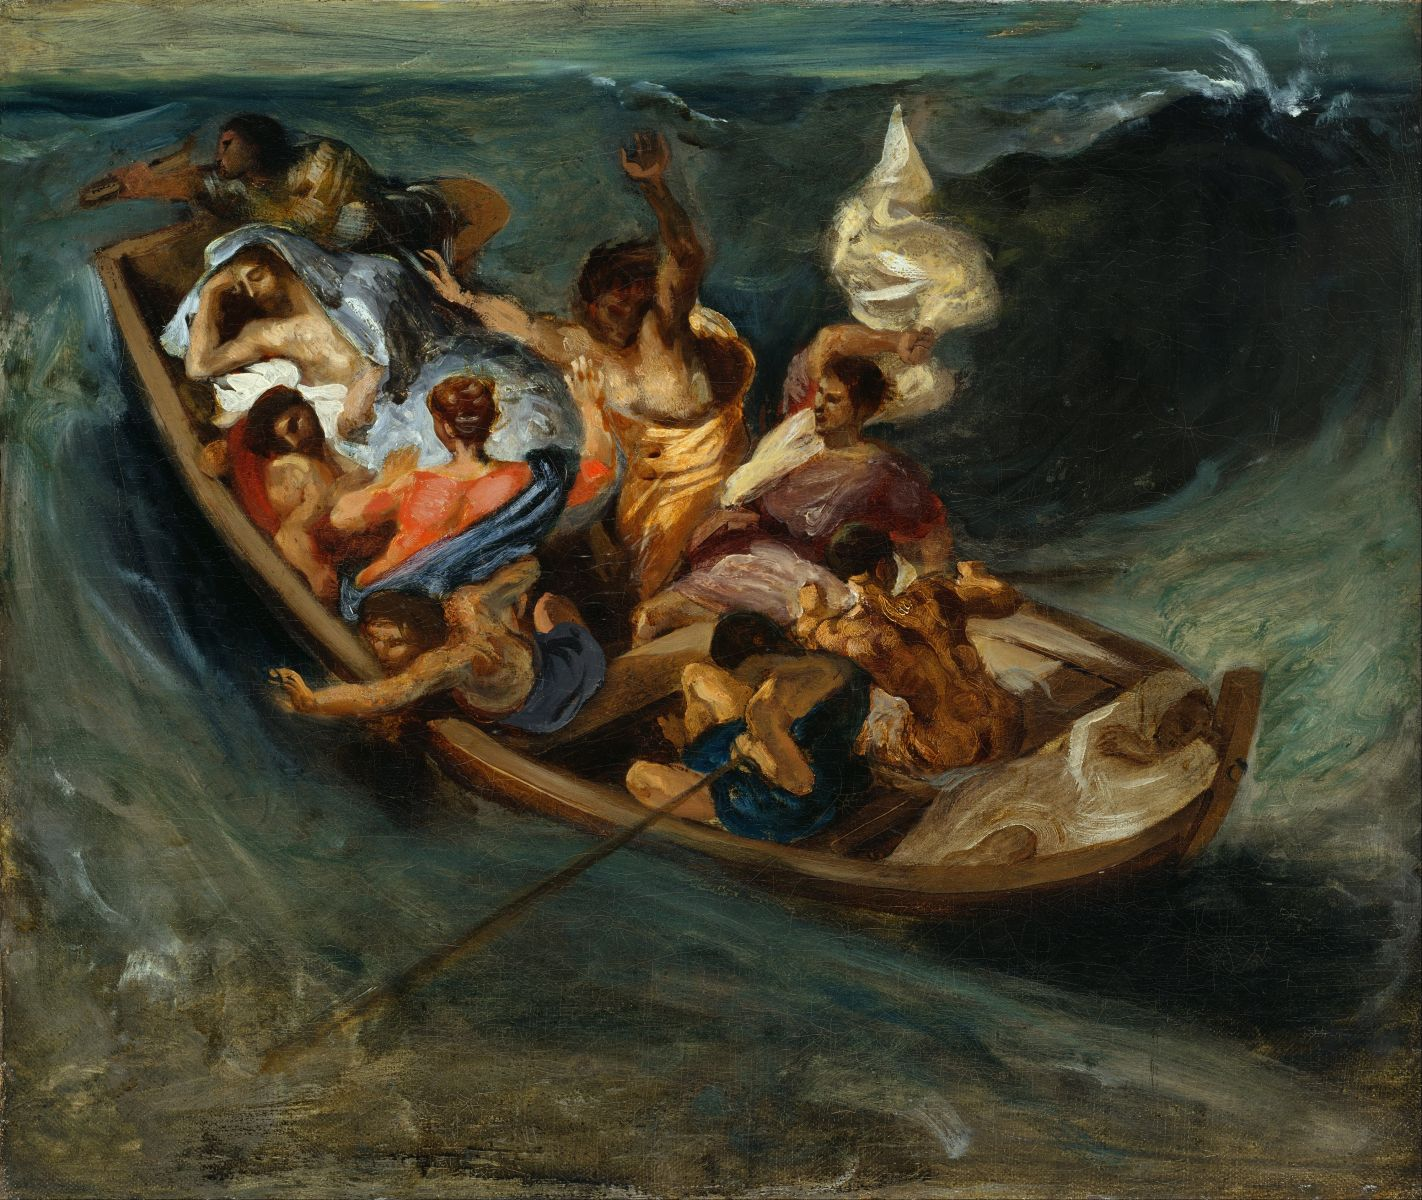 Christ on the Lake of Gennezaret, Eugène Delacroix, 1854